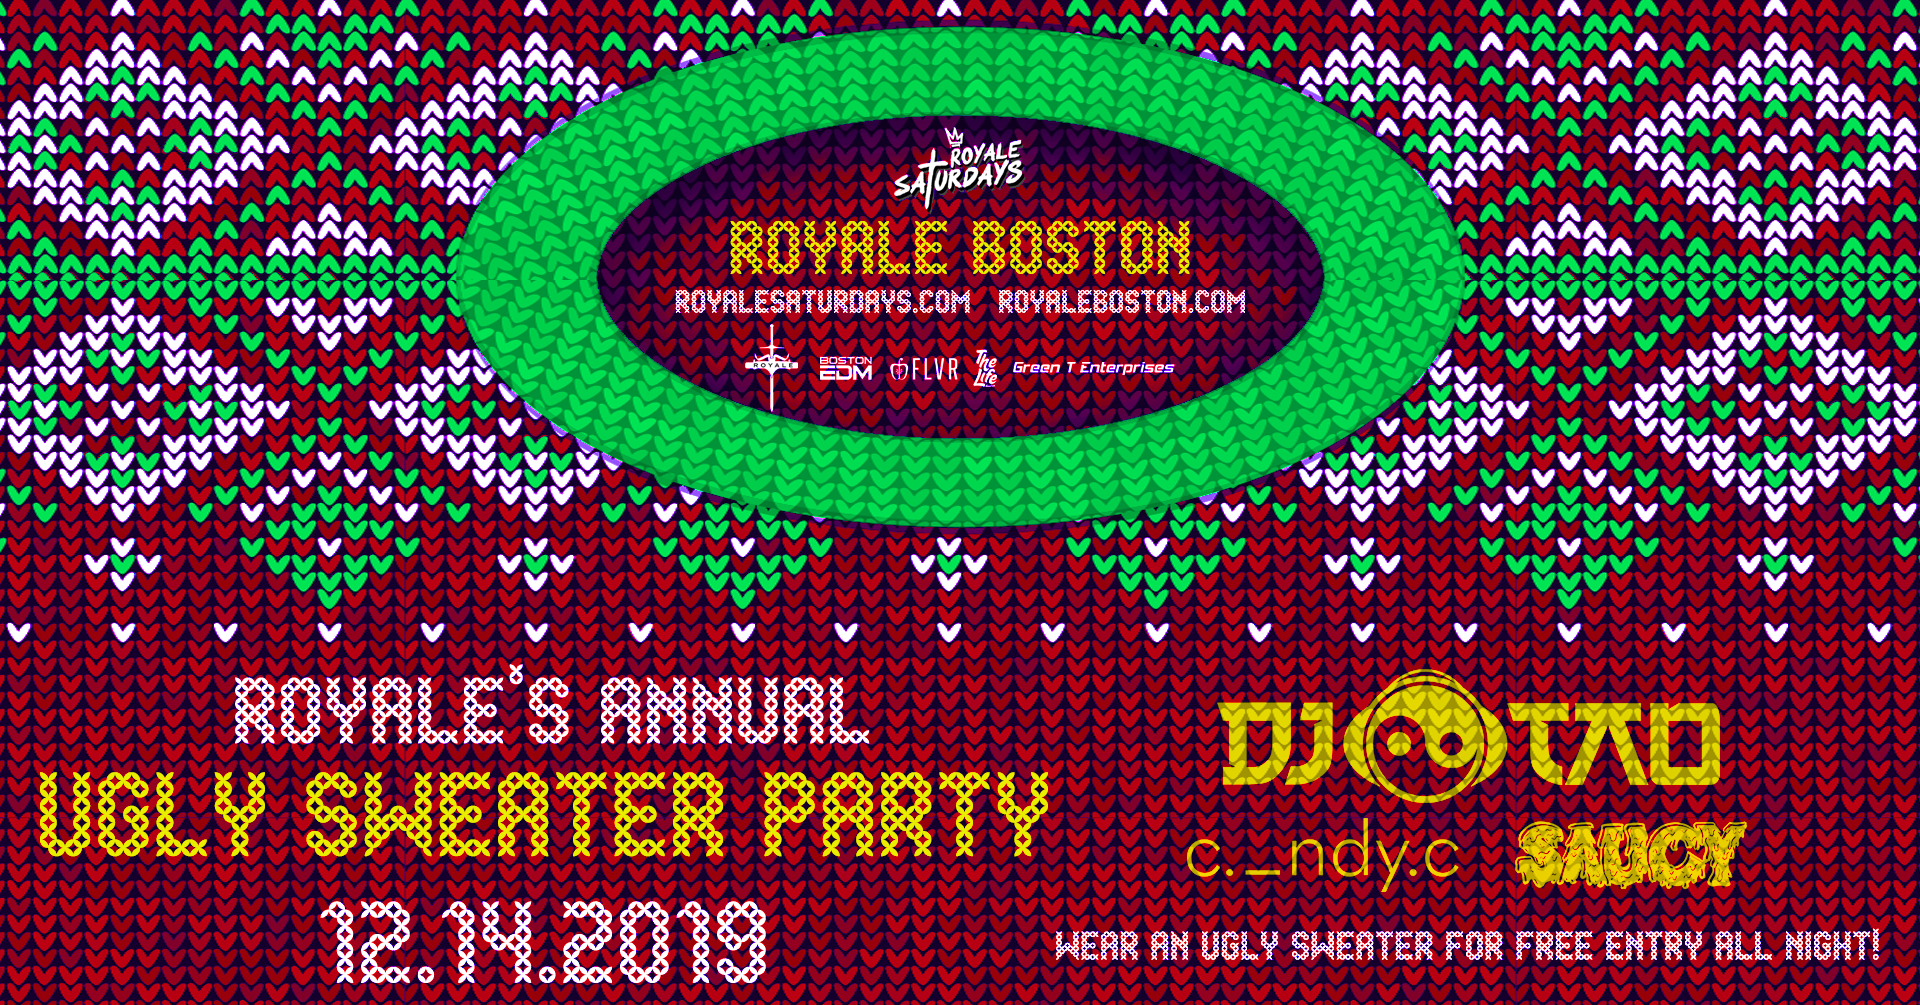 Royale Saturdays: Annual Ugly Sweater Party